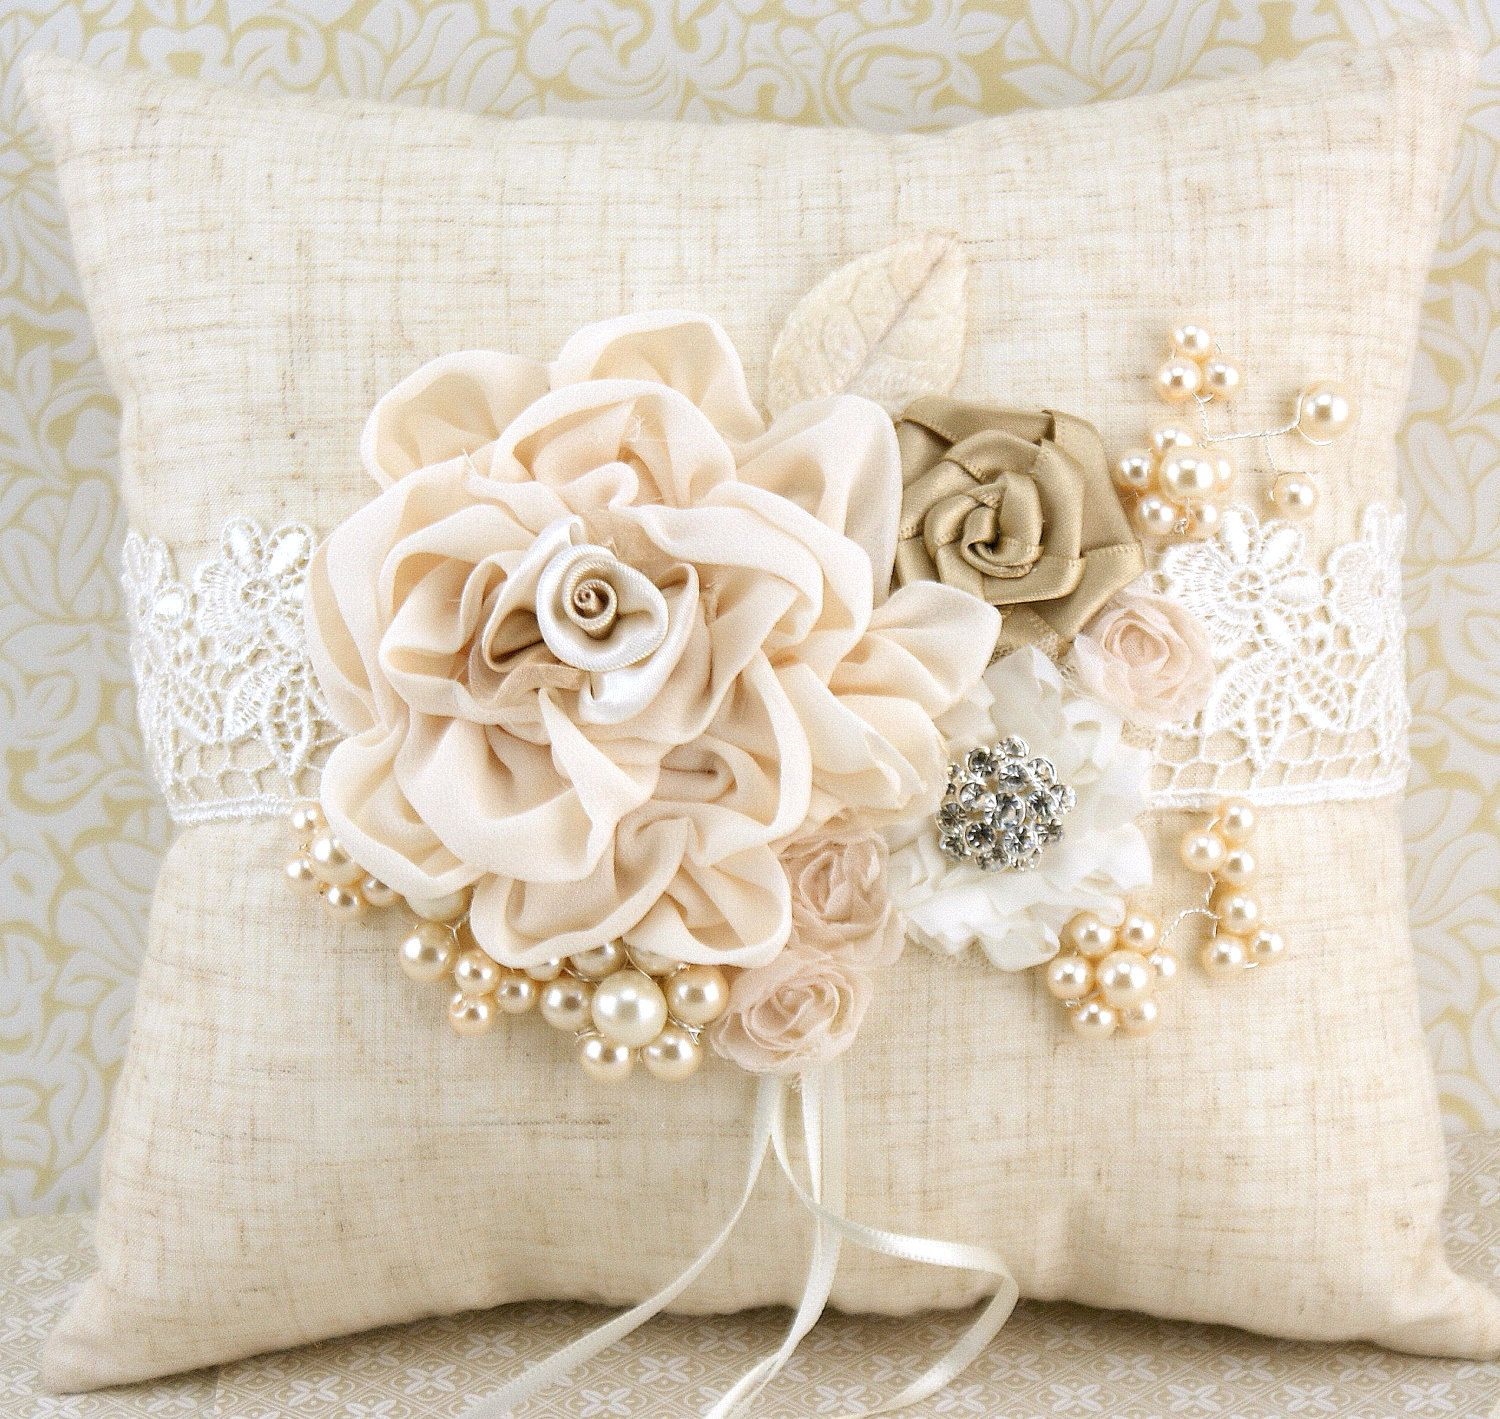 Bridal ring bearer pillow in ivory and champagne with linen lace